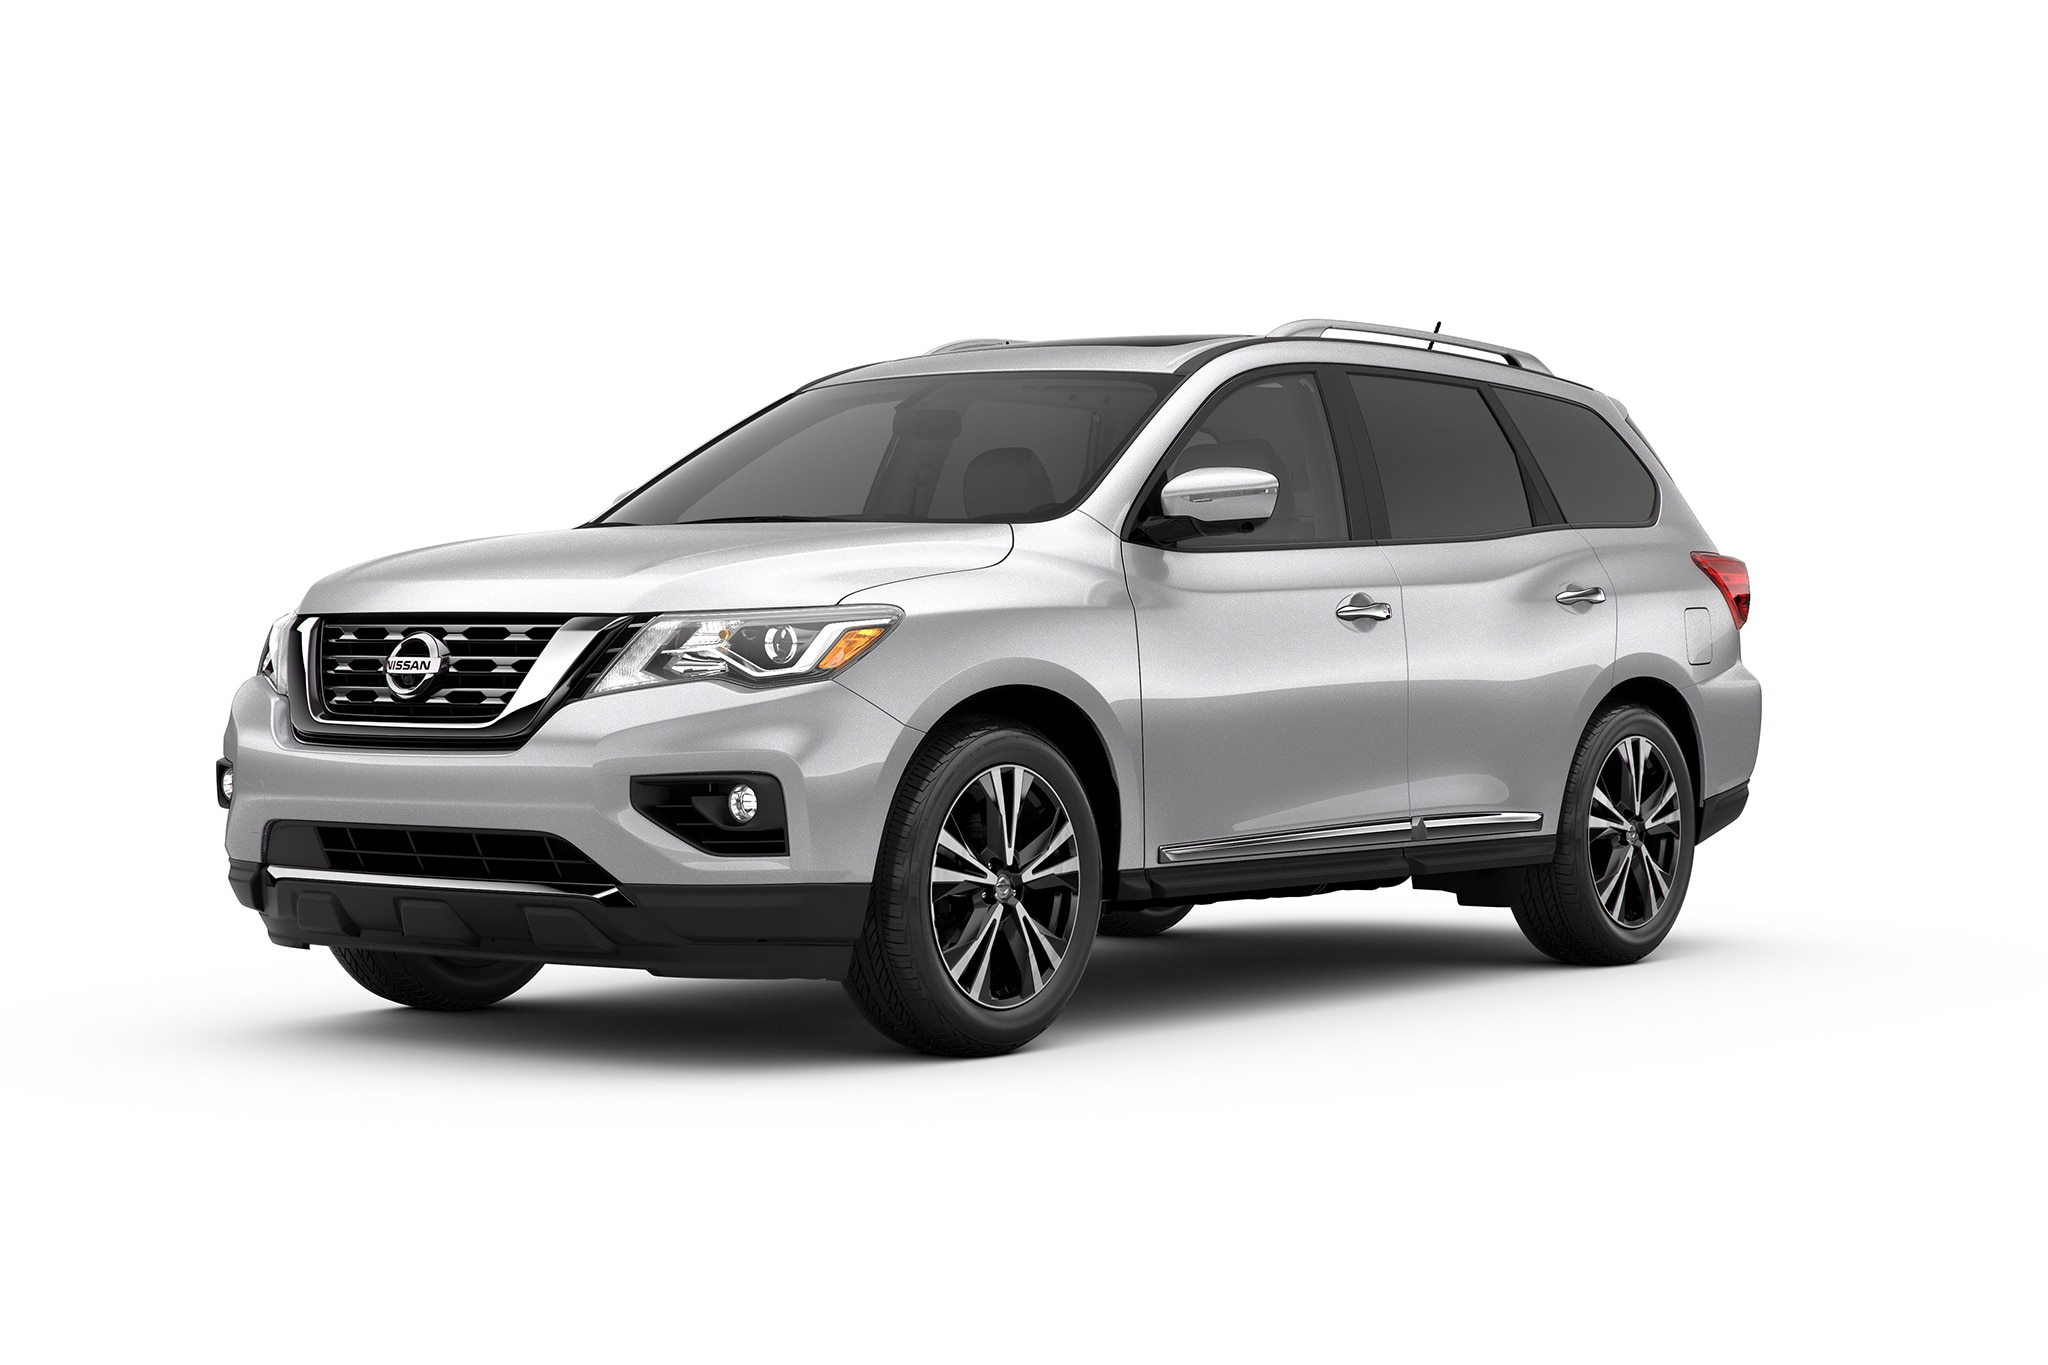 2017 nissan pathfinder seven things to know automobile magazine. Black Bedroom Furniture Sets. Home Design Ideas